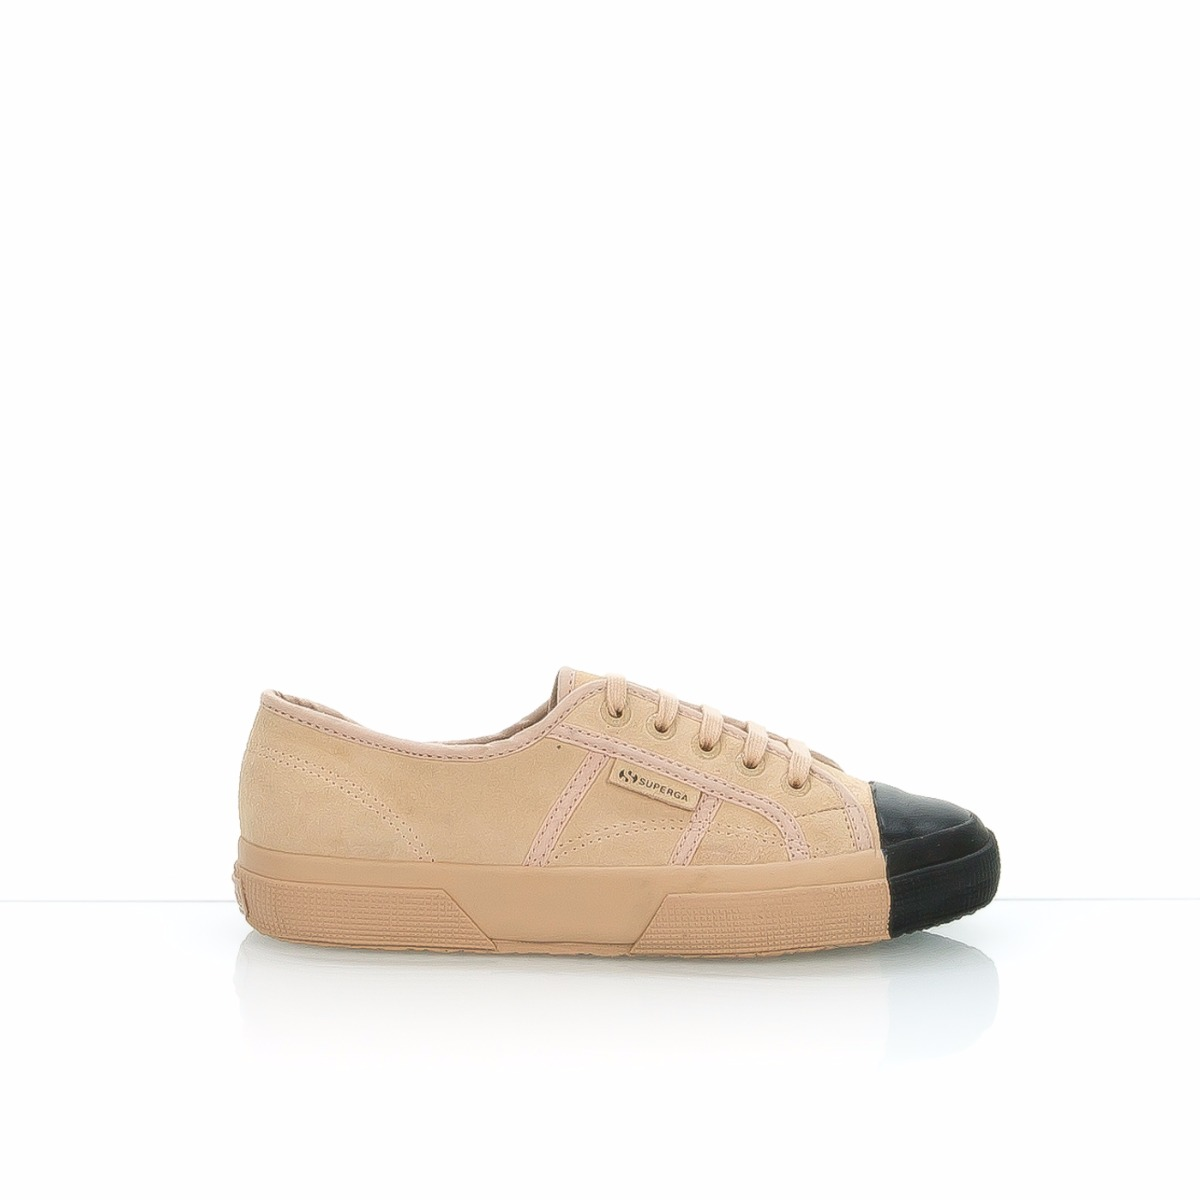 SUPERGA SNEAKERS DONNA S009TCO 941 ROSA LAMÉ